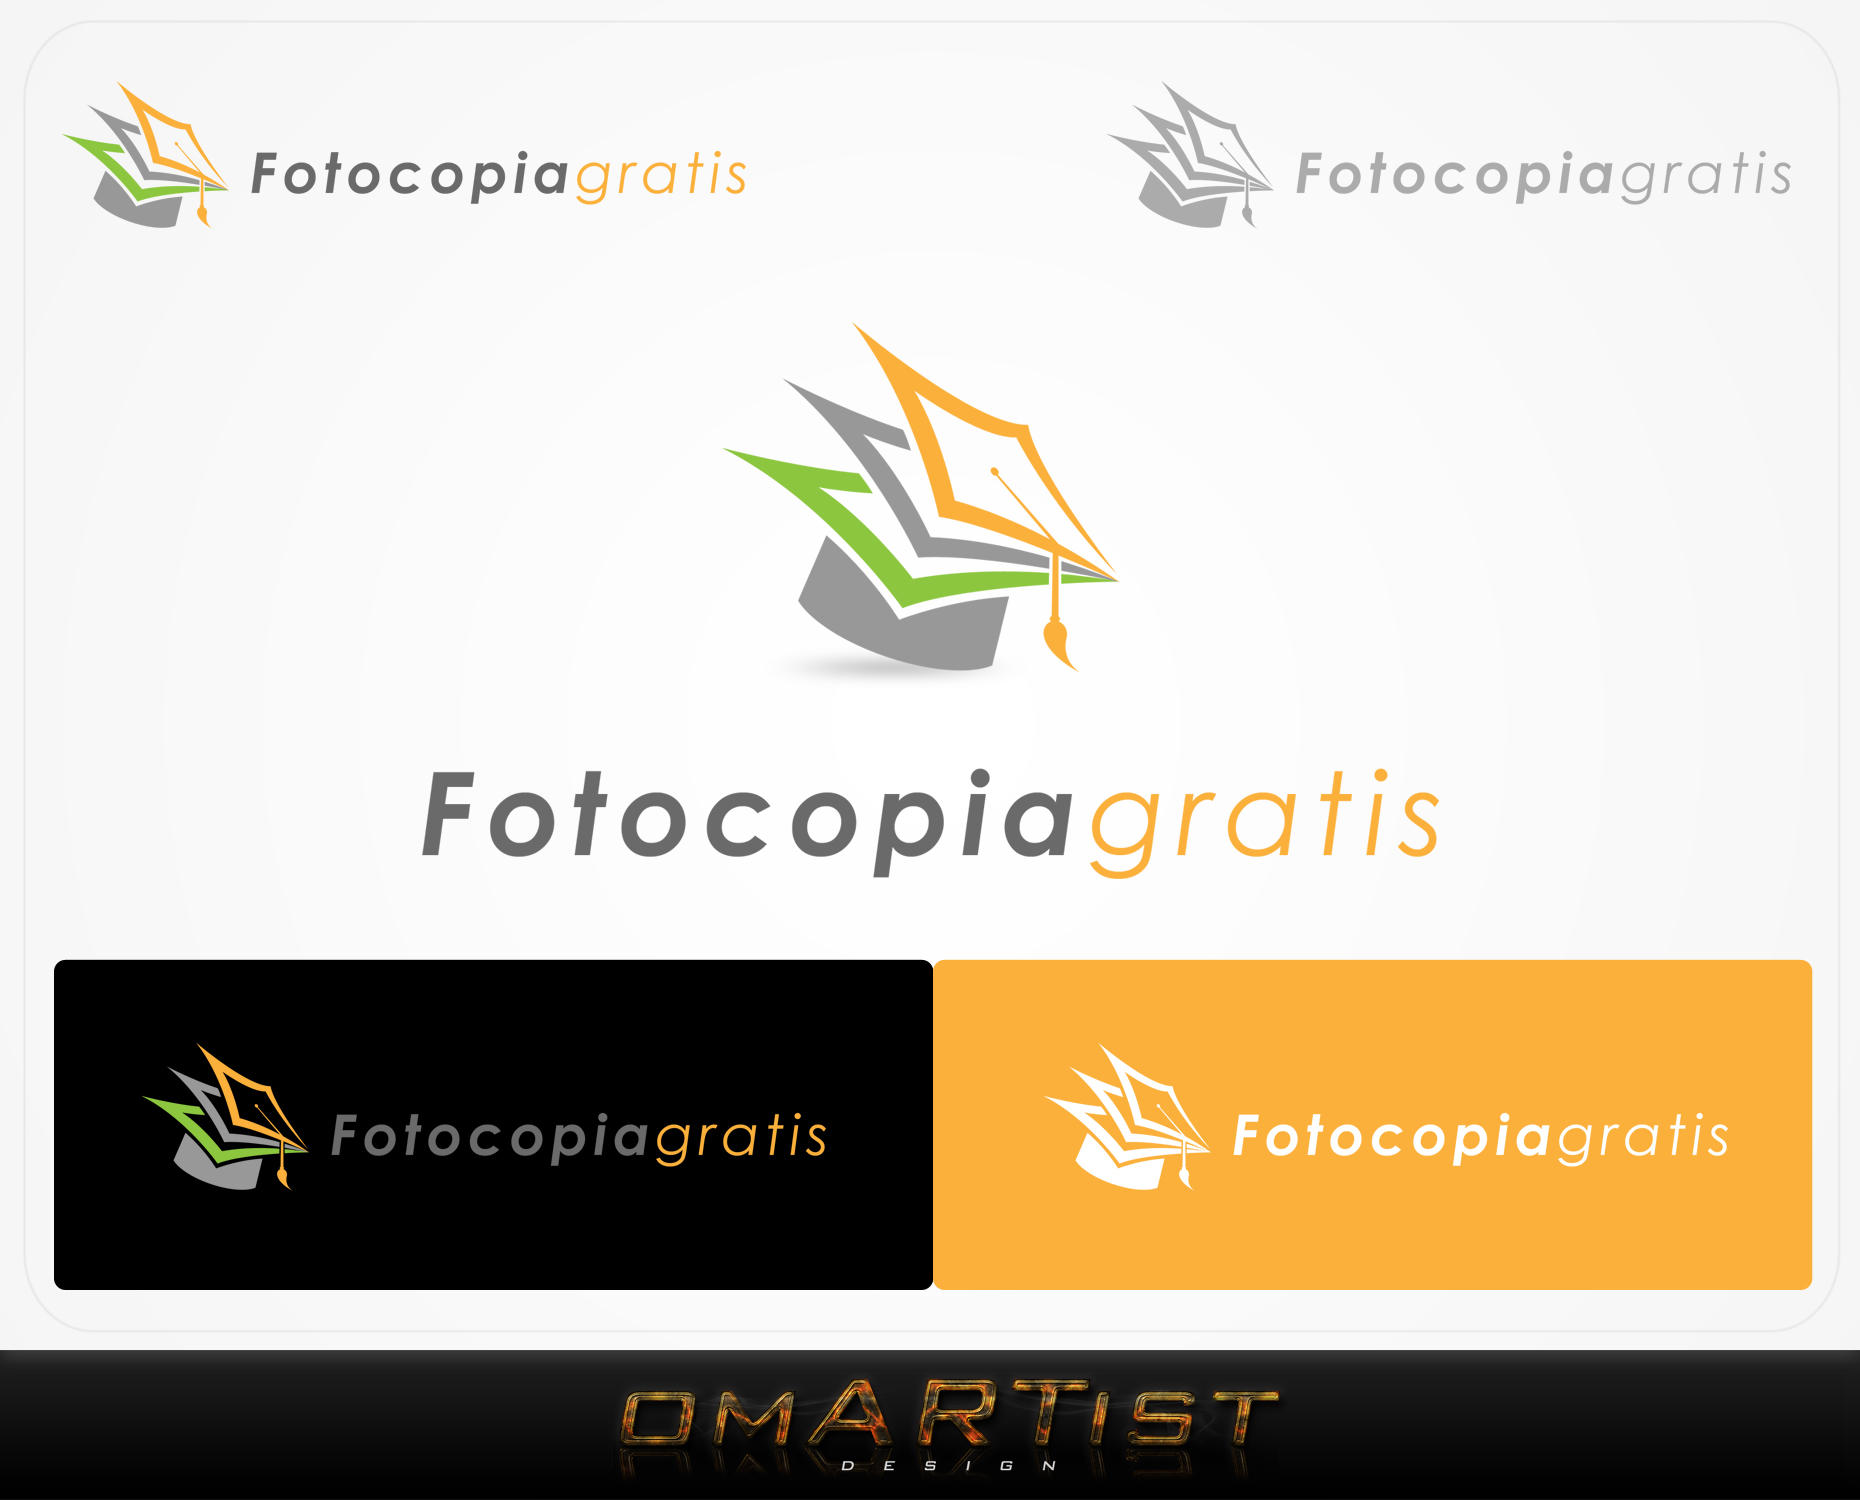 Logo Design by omARTist - Entry No. 251 in the Logo Design Contest Inspiring Logo Design for Fotocopiagratis.